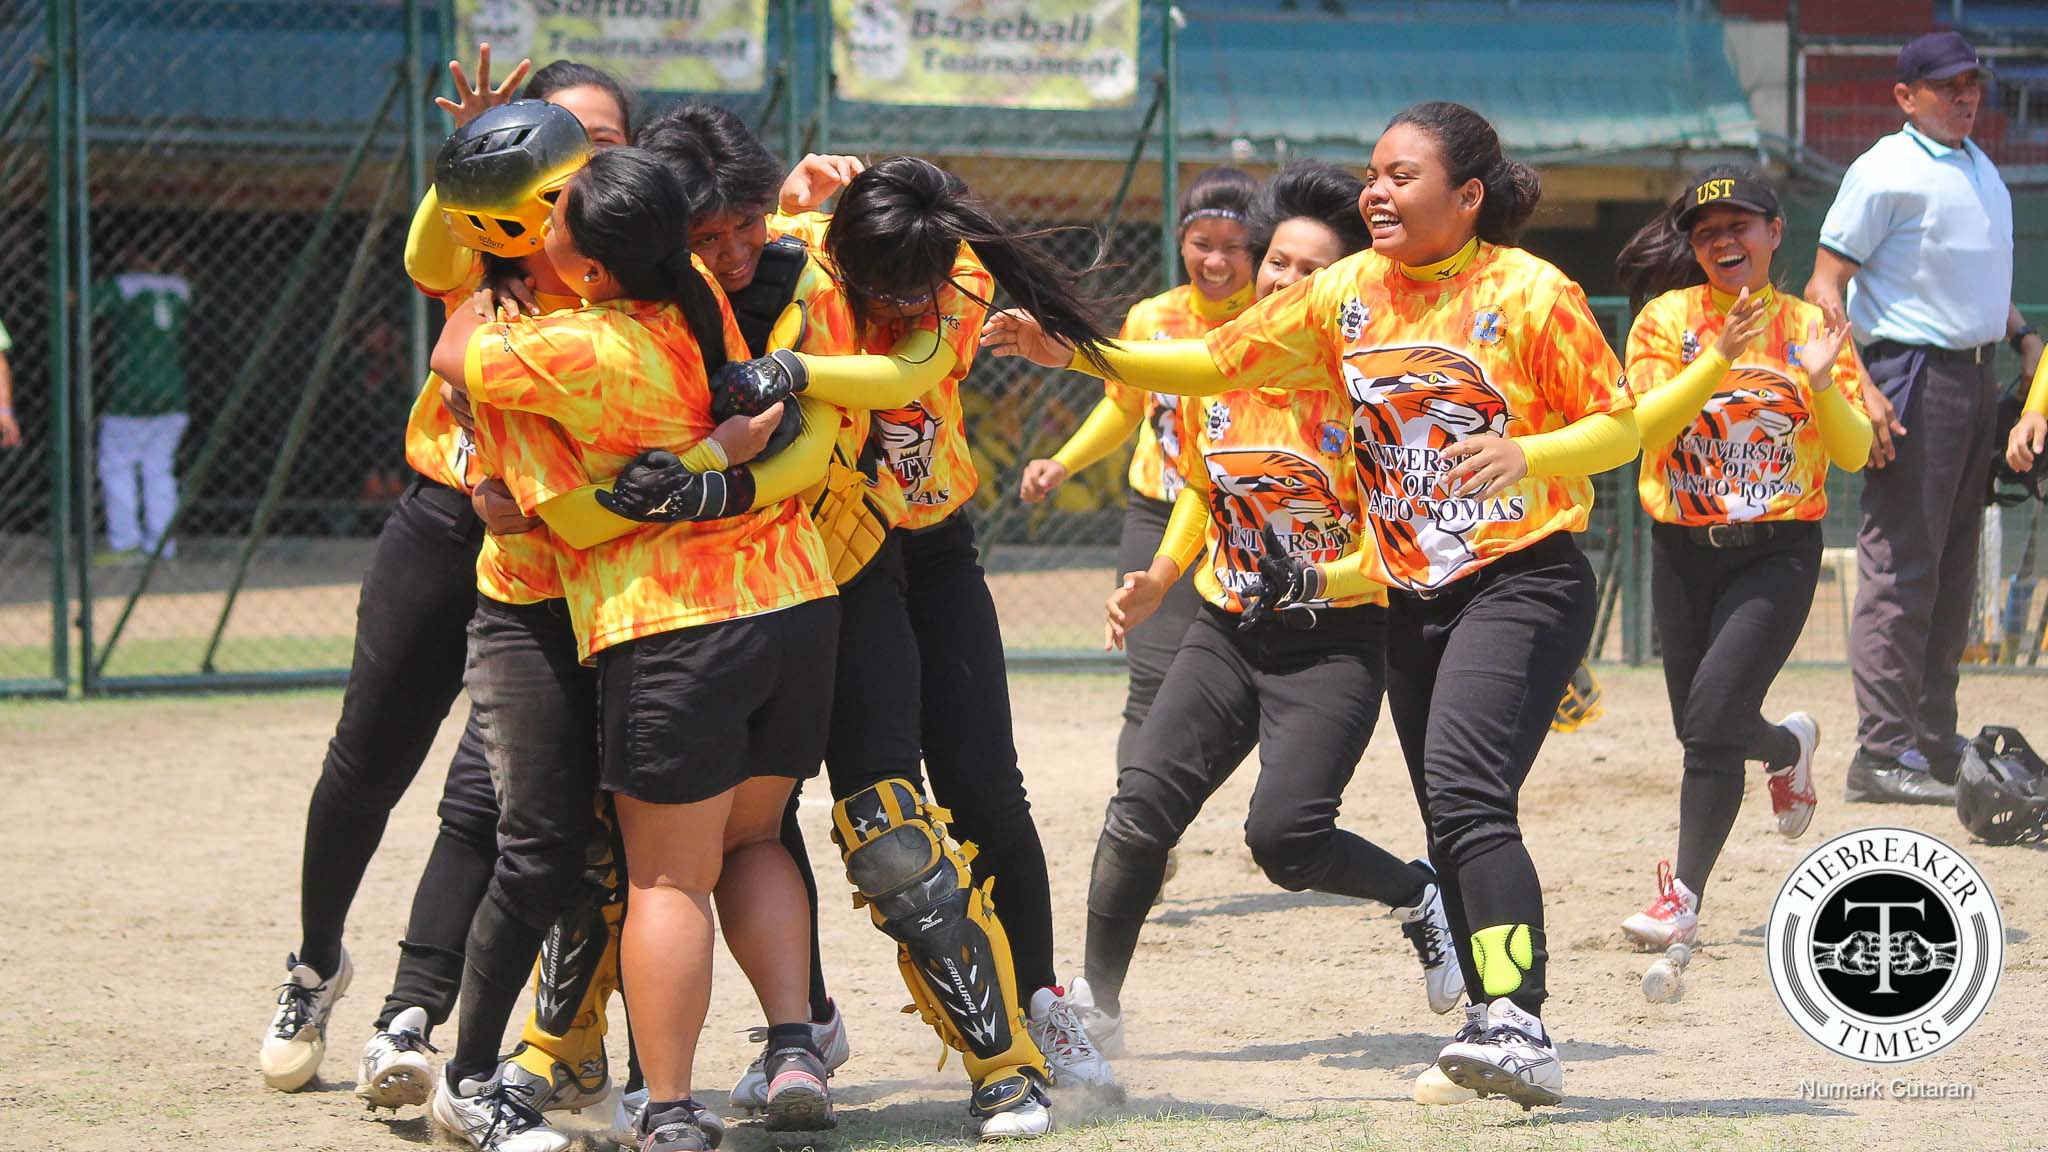 Tiebreaker Times Roa walk-off extends series to do-or-die Game 3 AdU News Softball UAAP UST  UST Tiger Softbelles UAAP Season 78 Softball UAAP Season 78 Sandy Barredo Queeny Sabobo Mary Louise Garde Kristine Lacupa Gelyn Lamata CJ Roa Annalie Benjamen Ann Antolihao Ana Santiago Adamson Softball